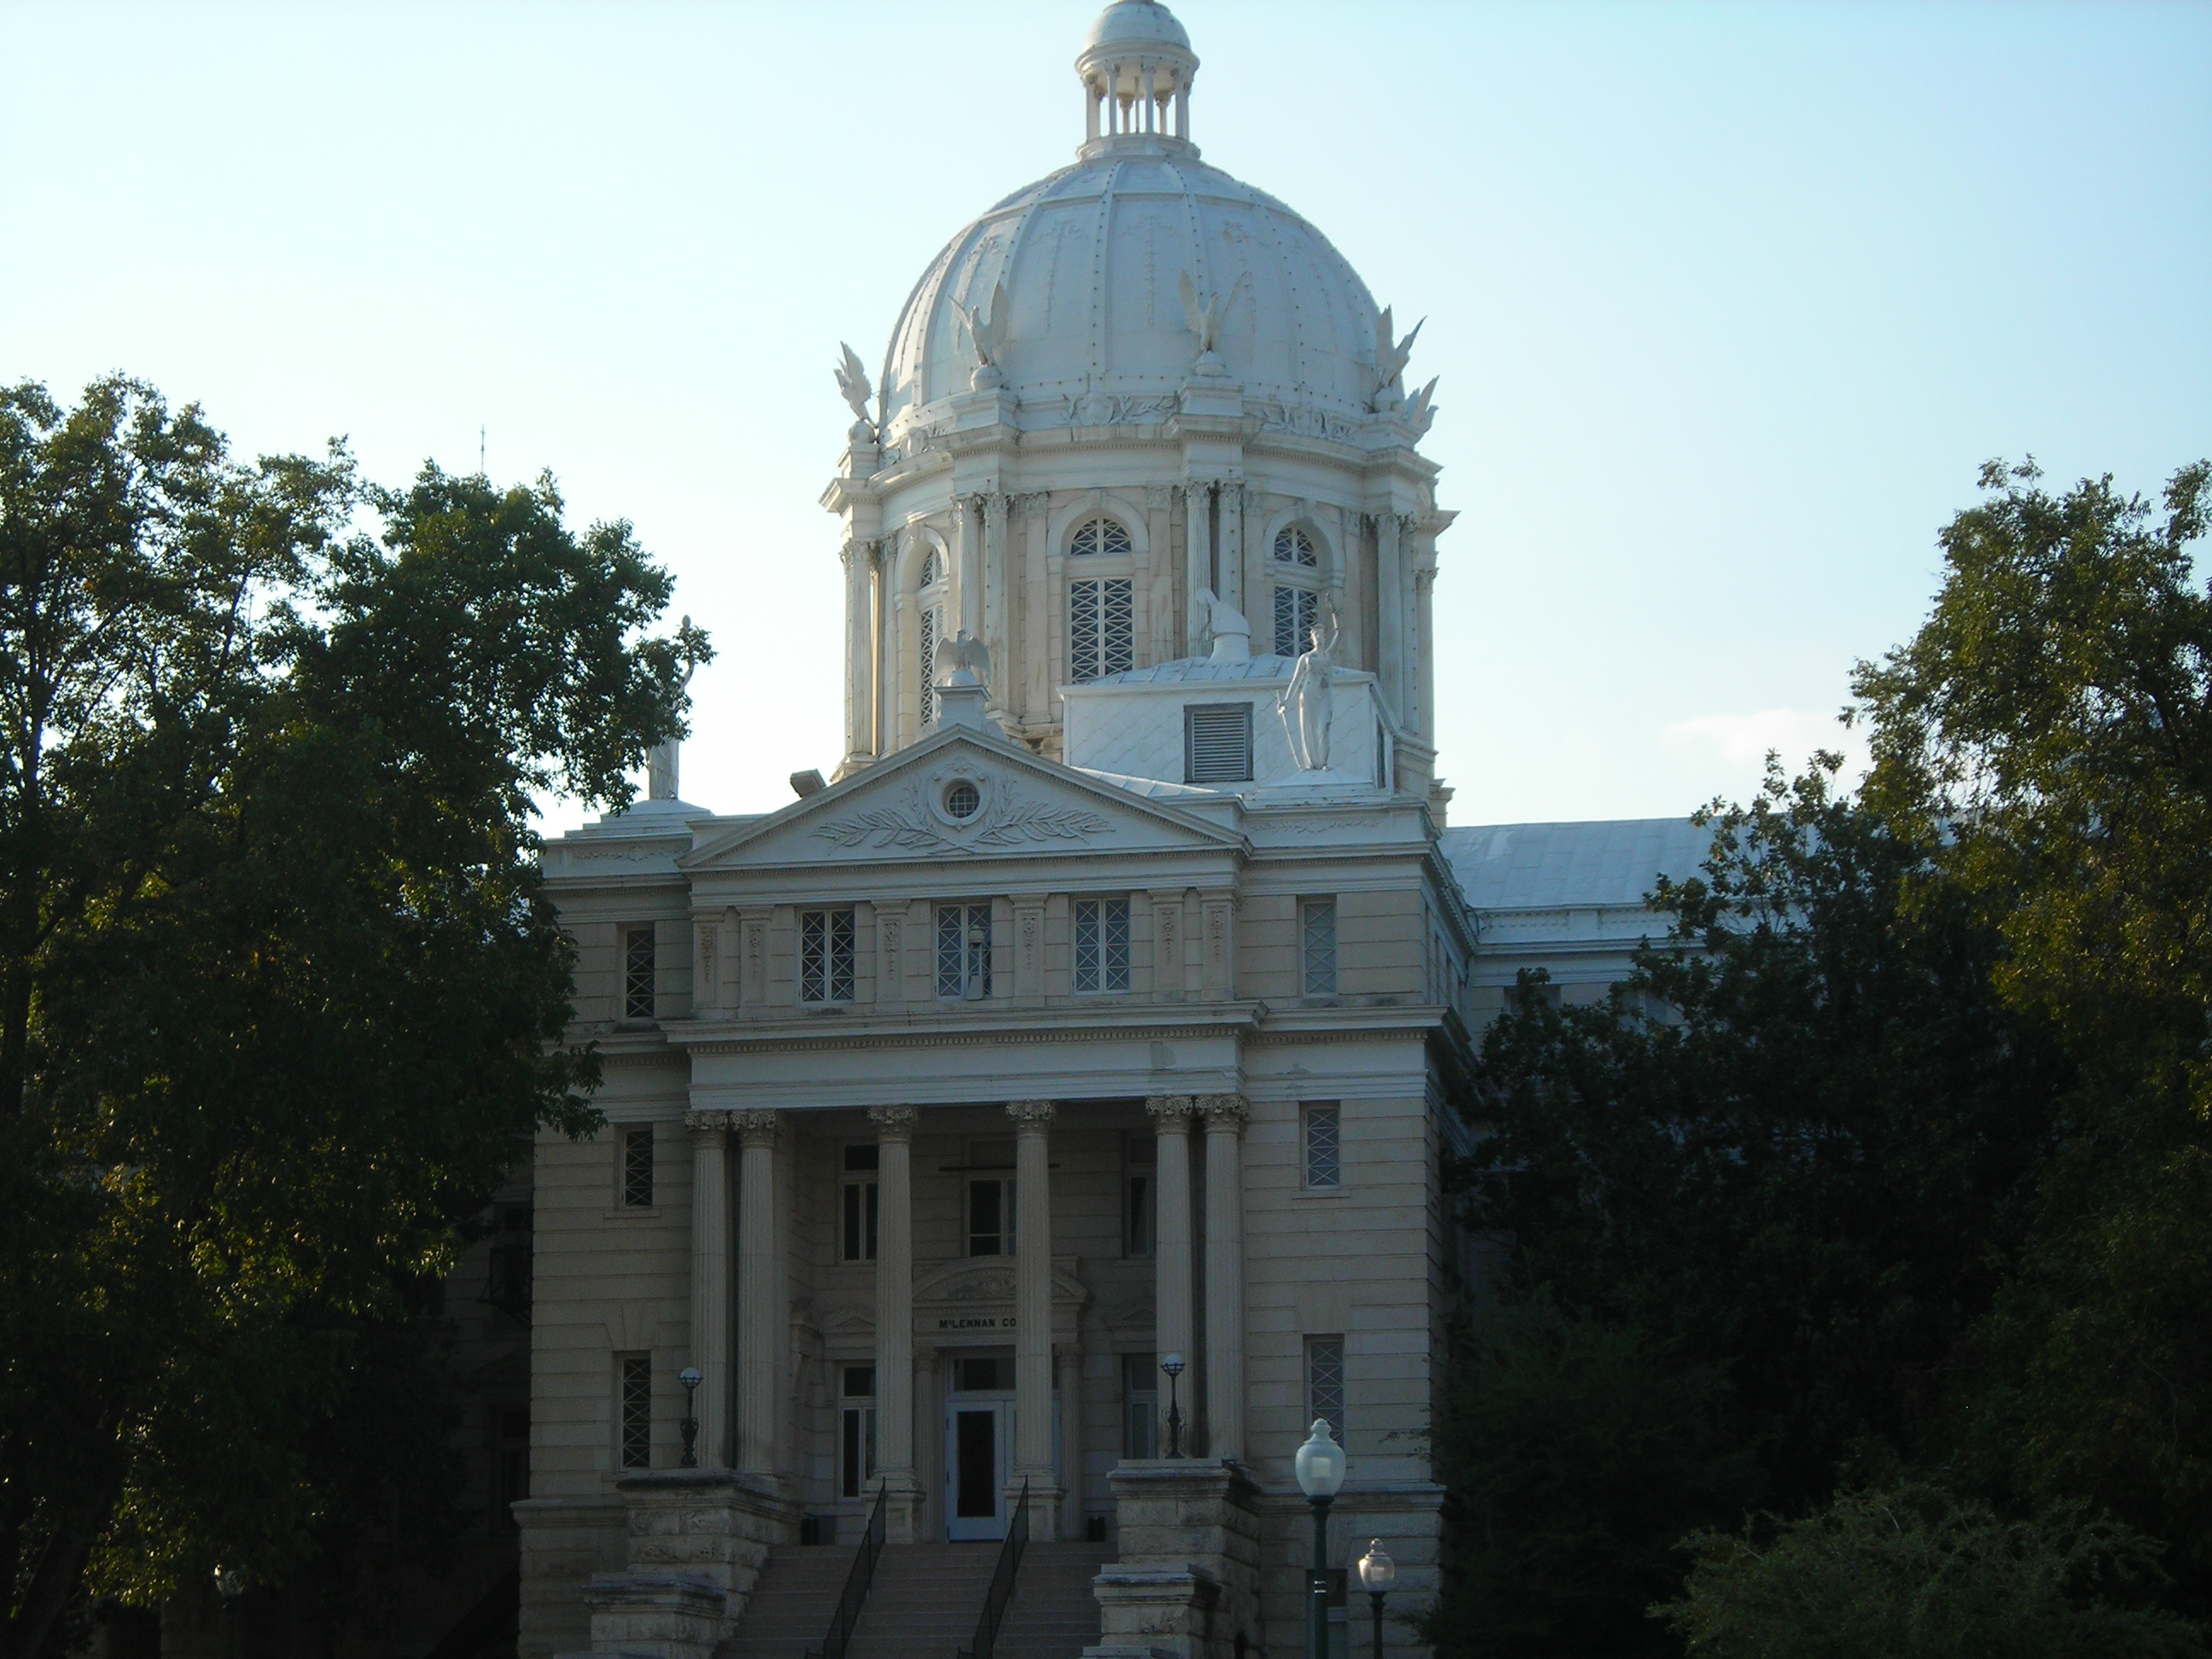 county courthouse (yawn). where's the junk?!